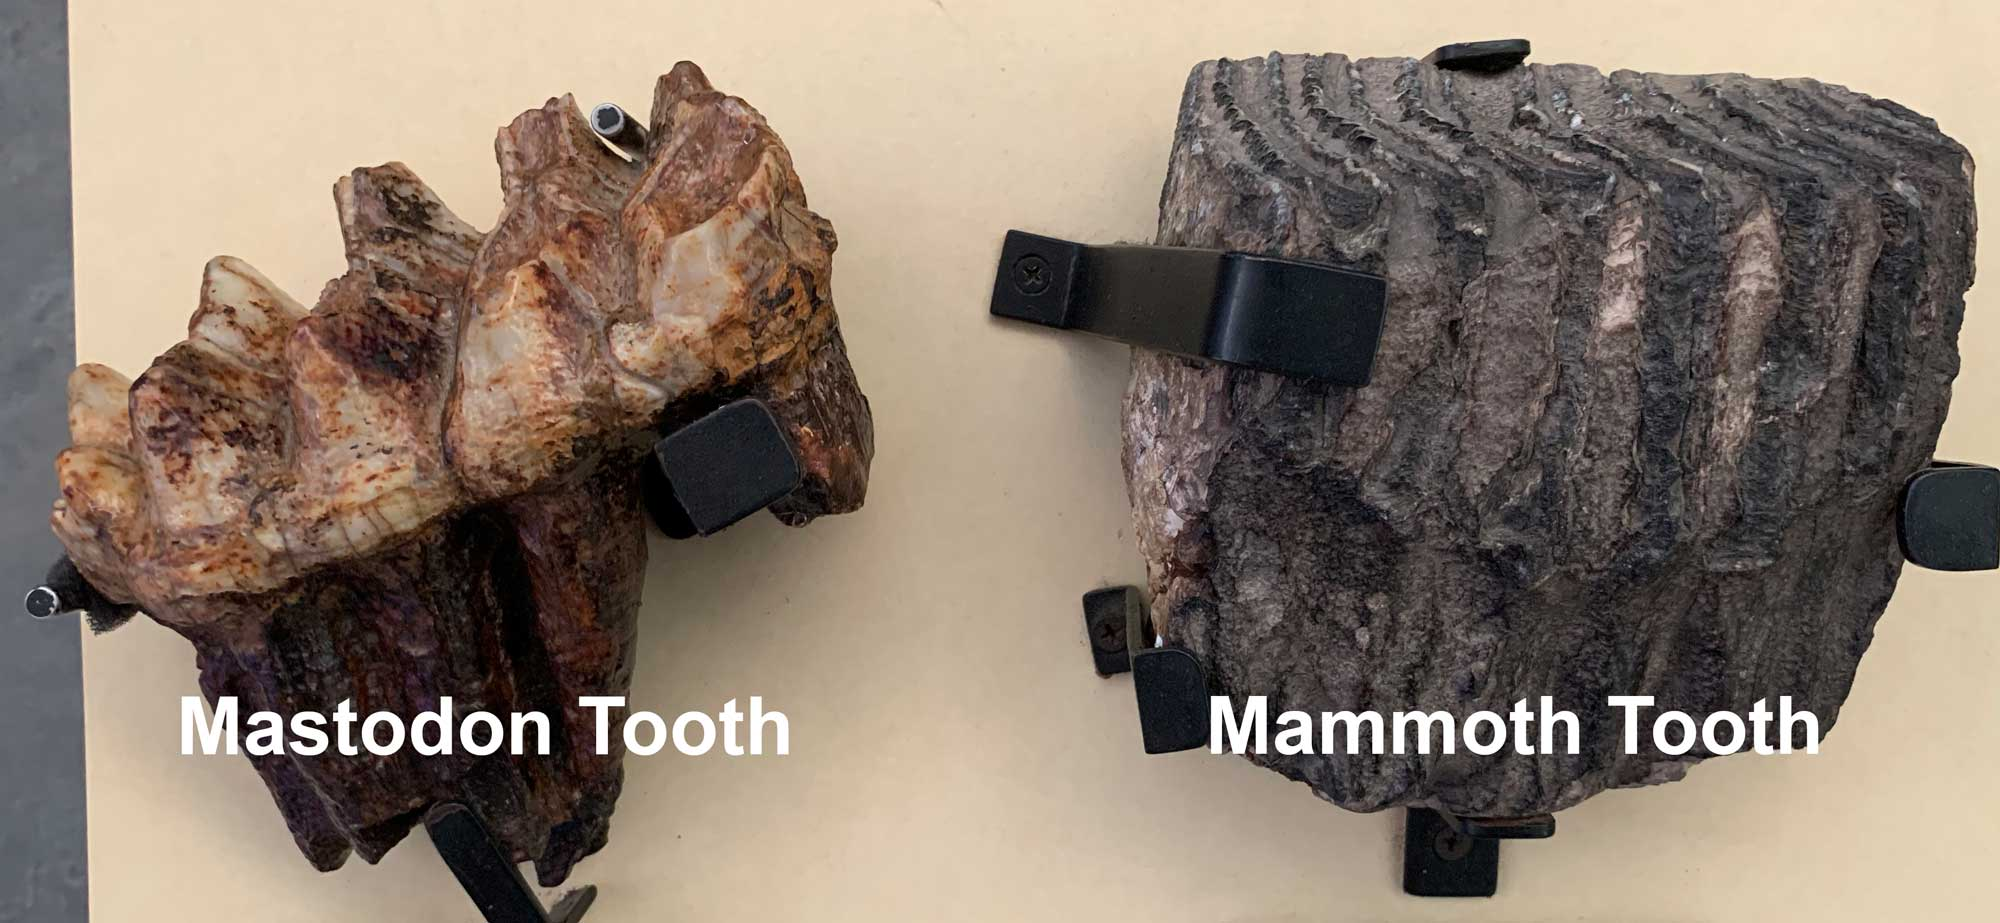 Photograph showing examples of mastodon and mammoth teeth.